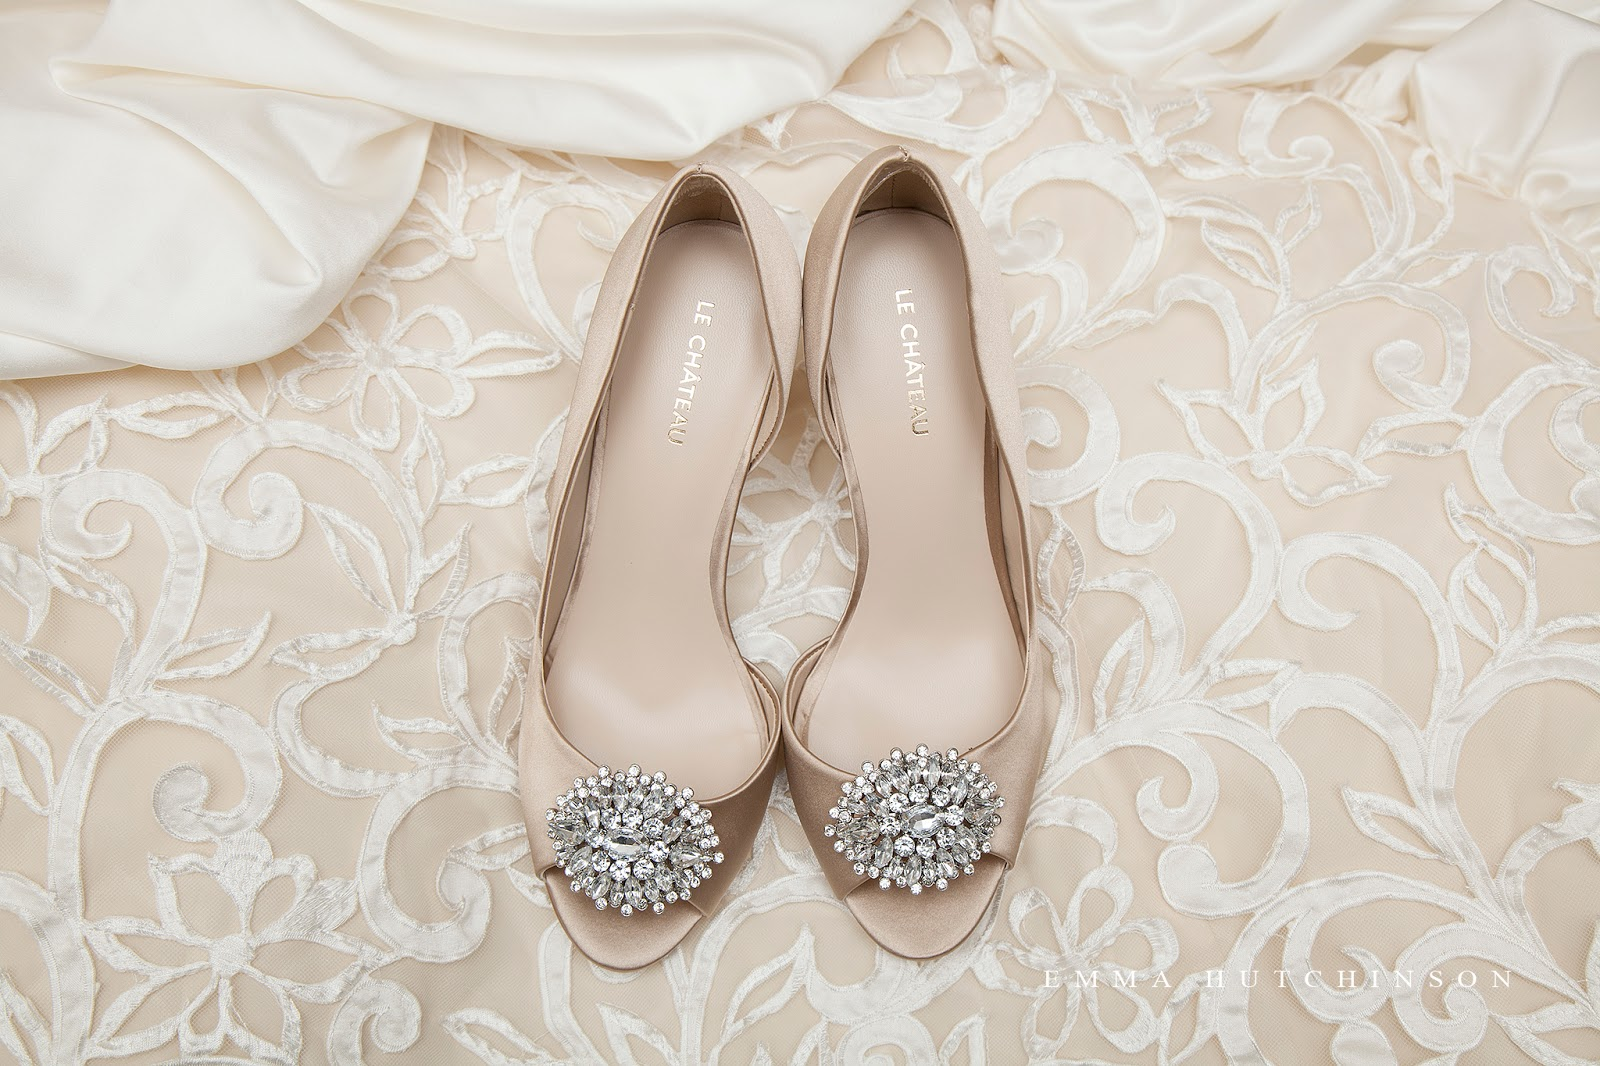 Weddings in Tilting, Fogo Island - photograph of Bride's shoes